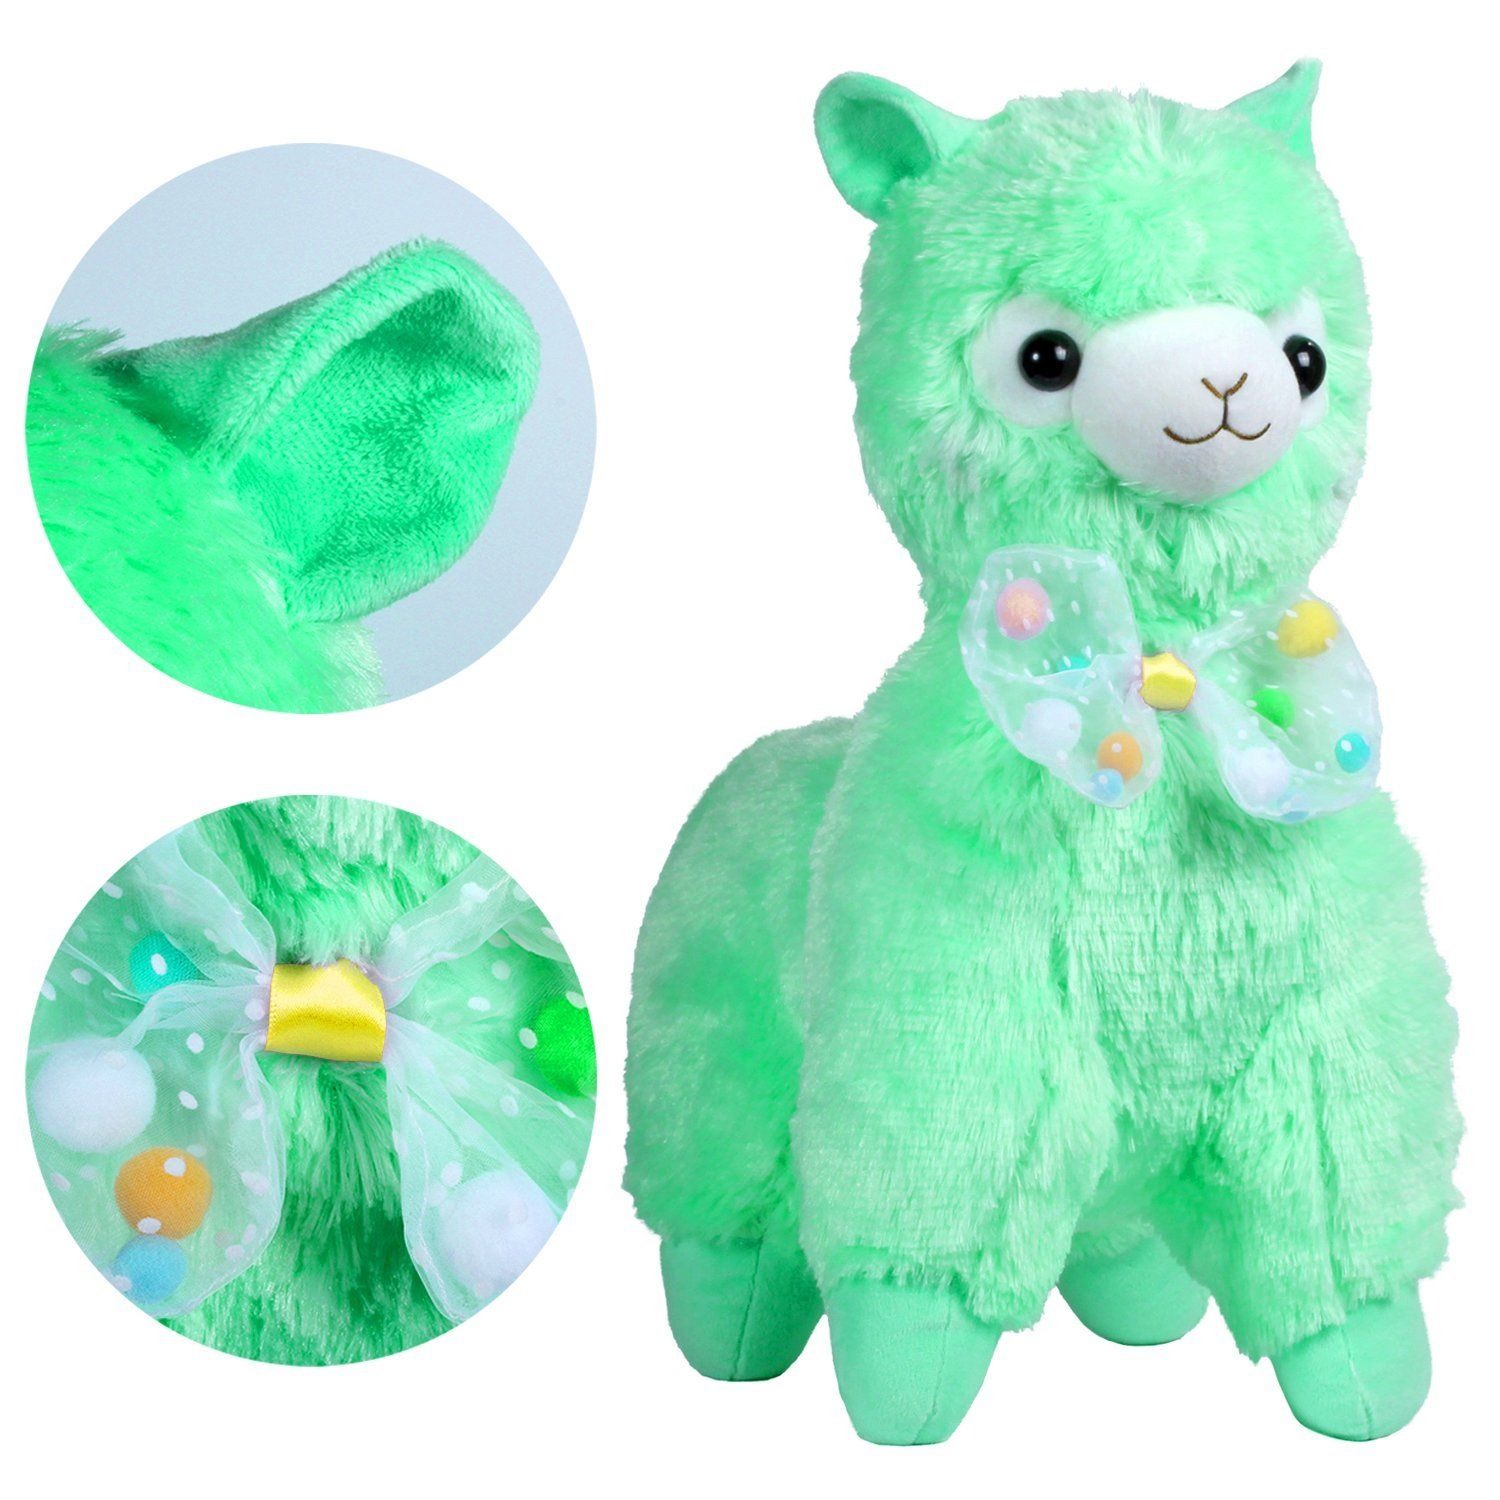 KSB 20 Giant HUGE Green Bow Tie Plush Alpaca 100 Plush Stuffed ...